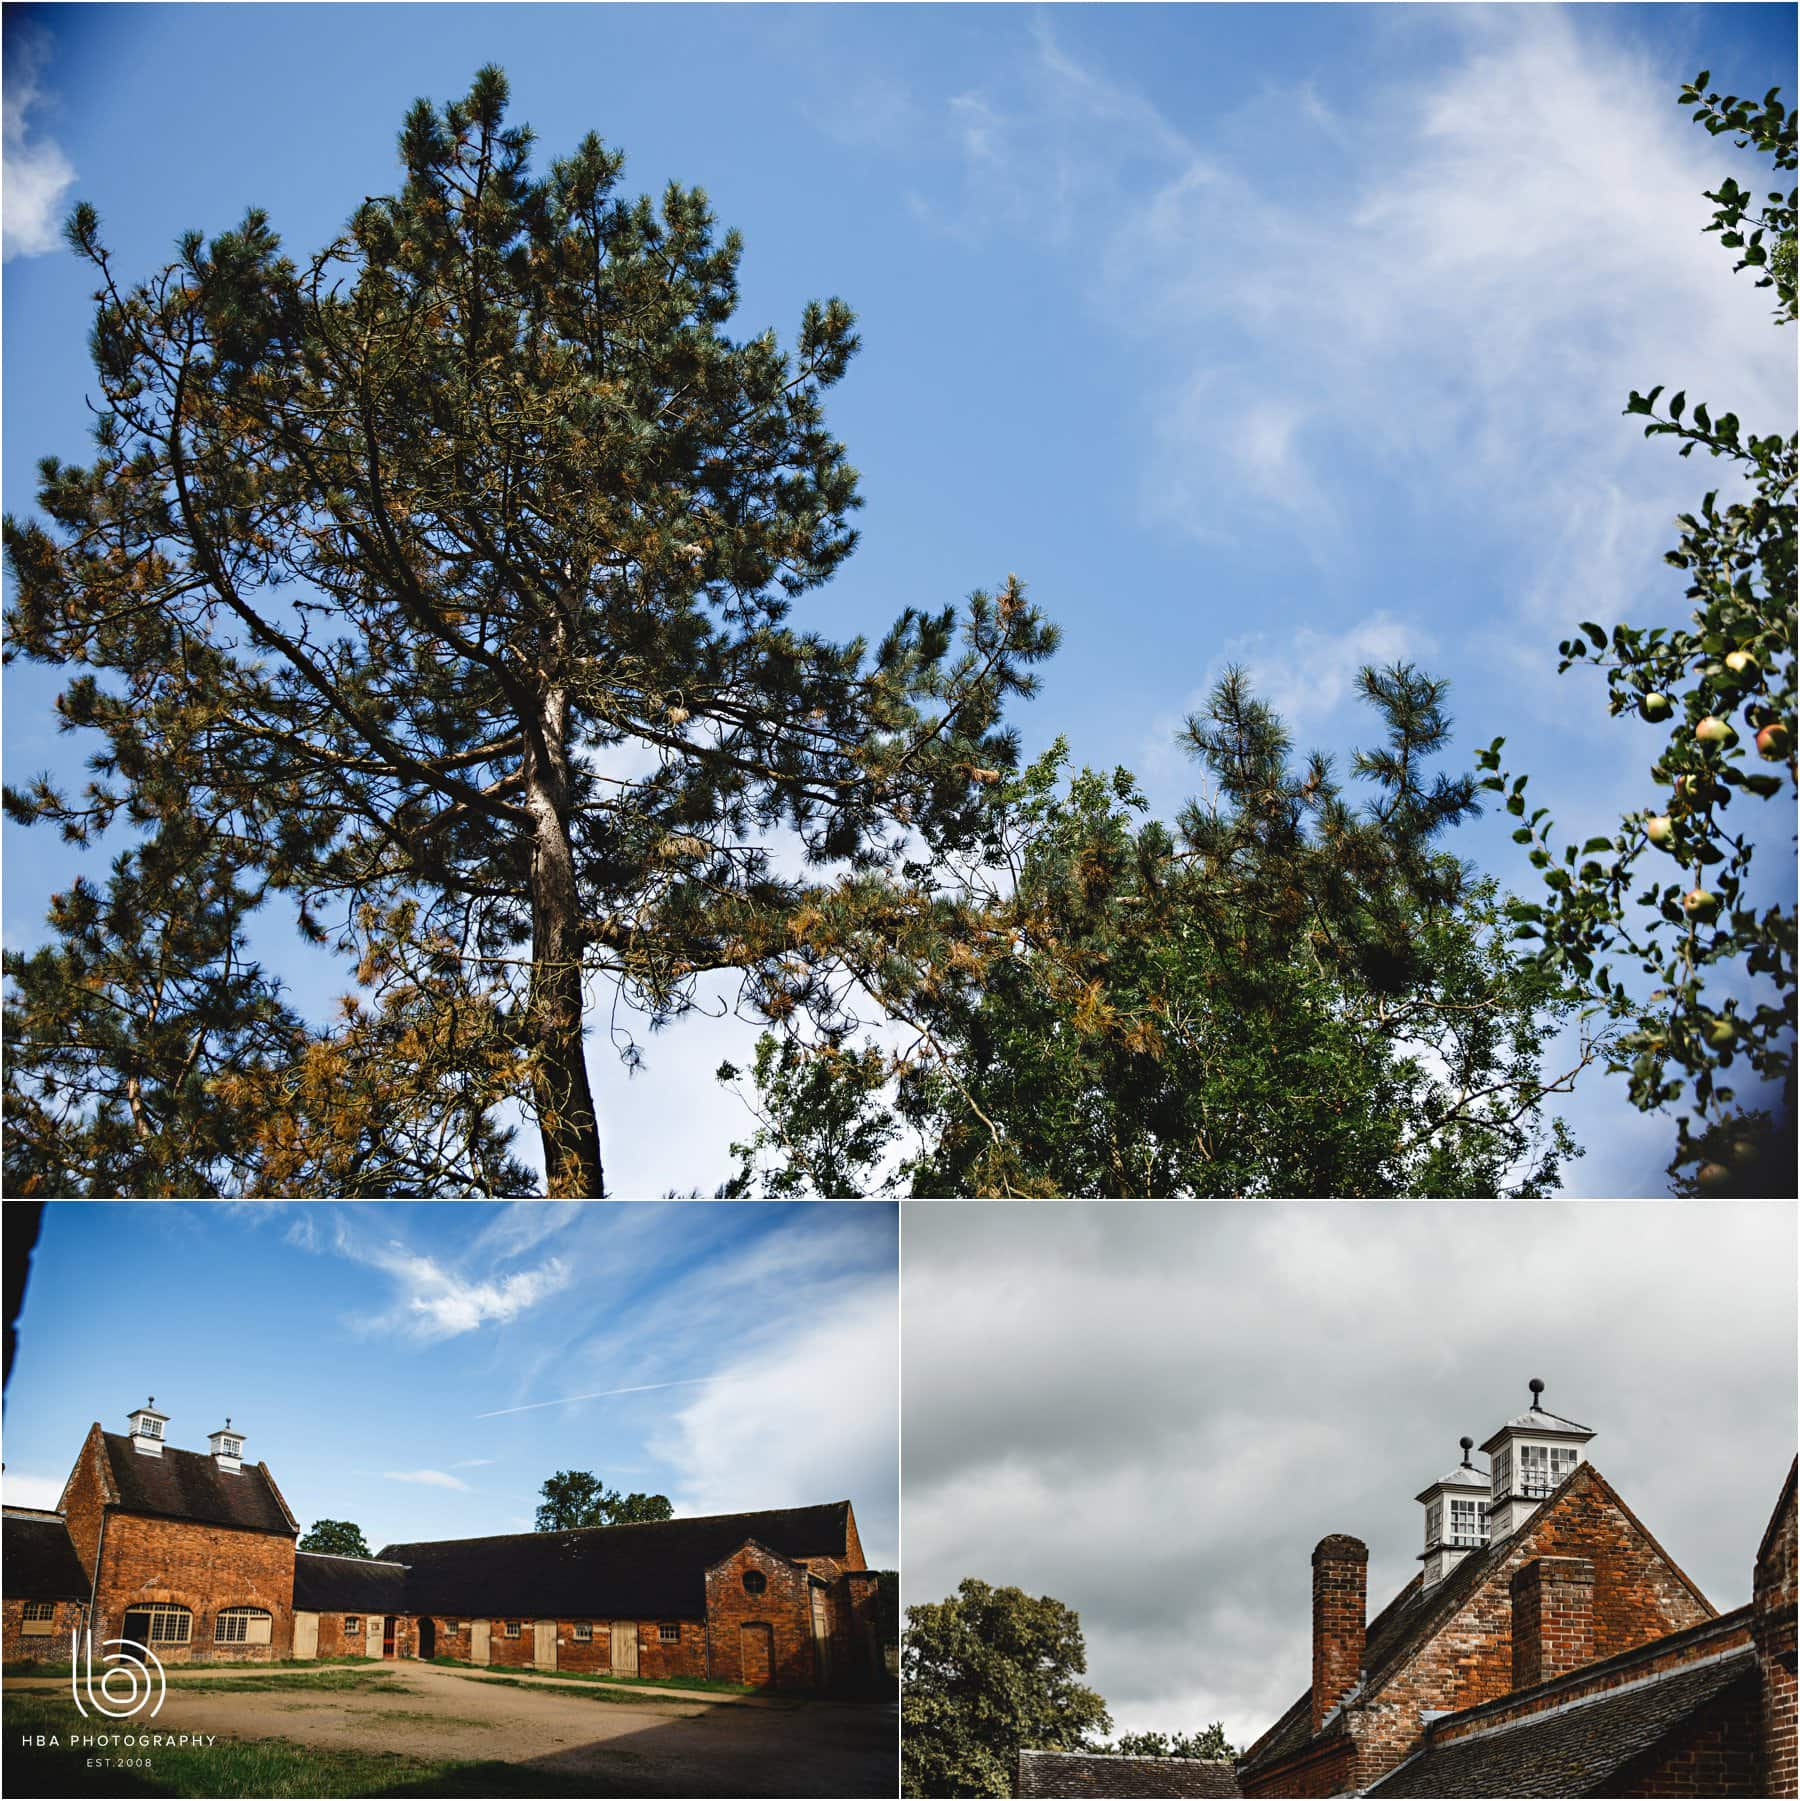 the buildings at Calke ABbey